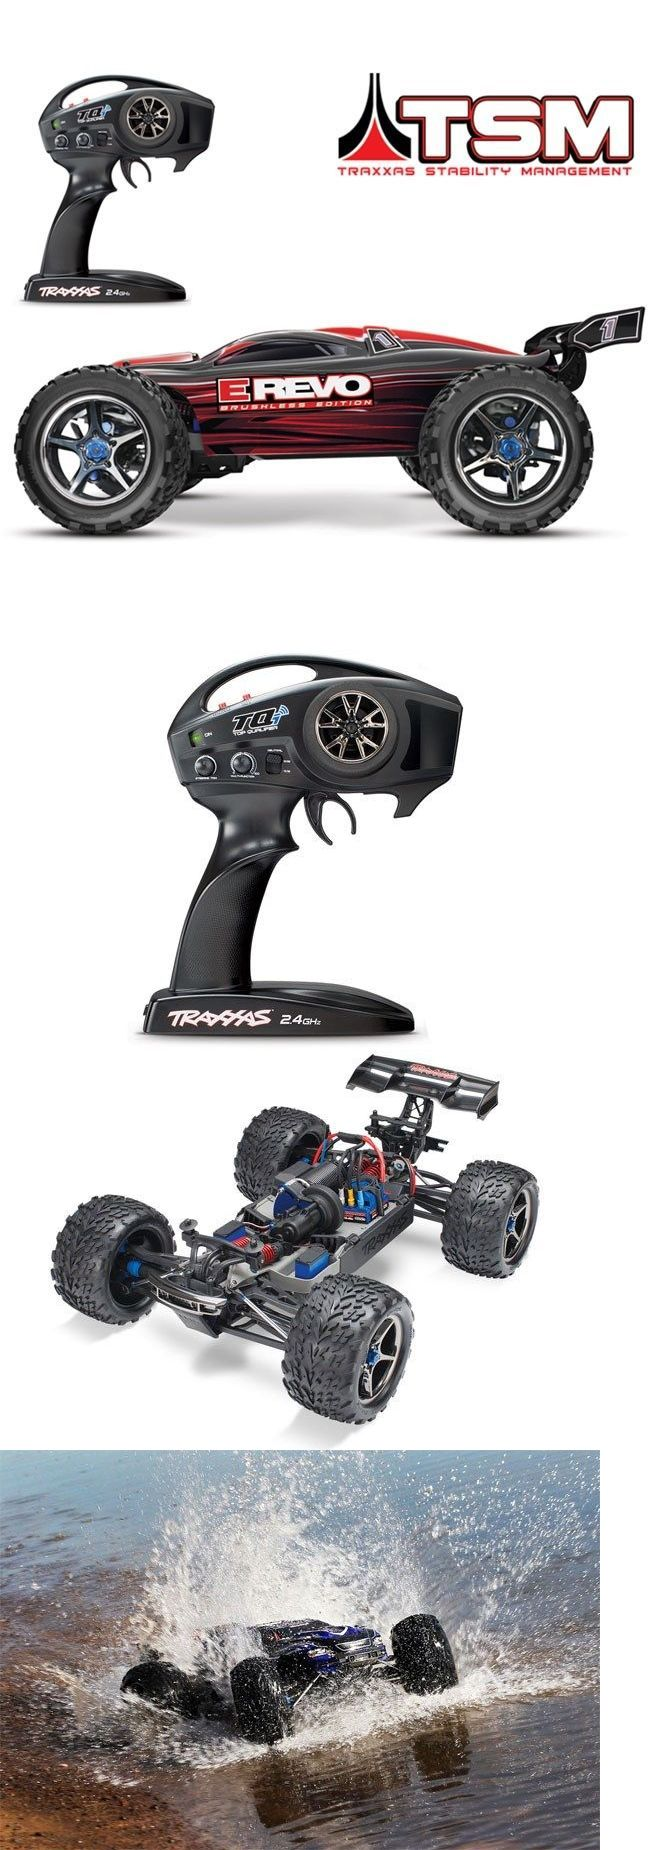 Cars trucks and motorcycles 182183 traxxas 56086 4 e revo brushless rtr rc